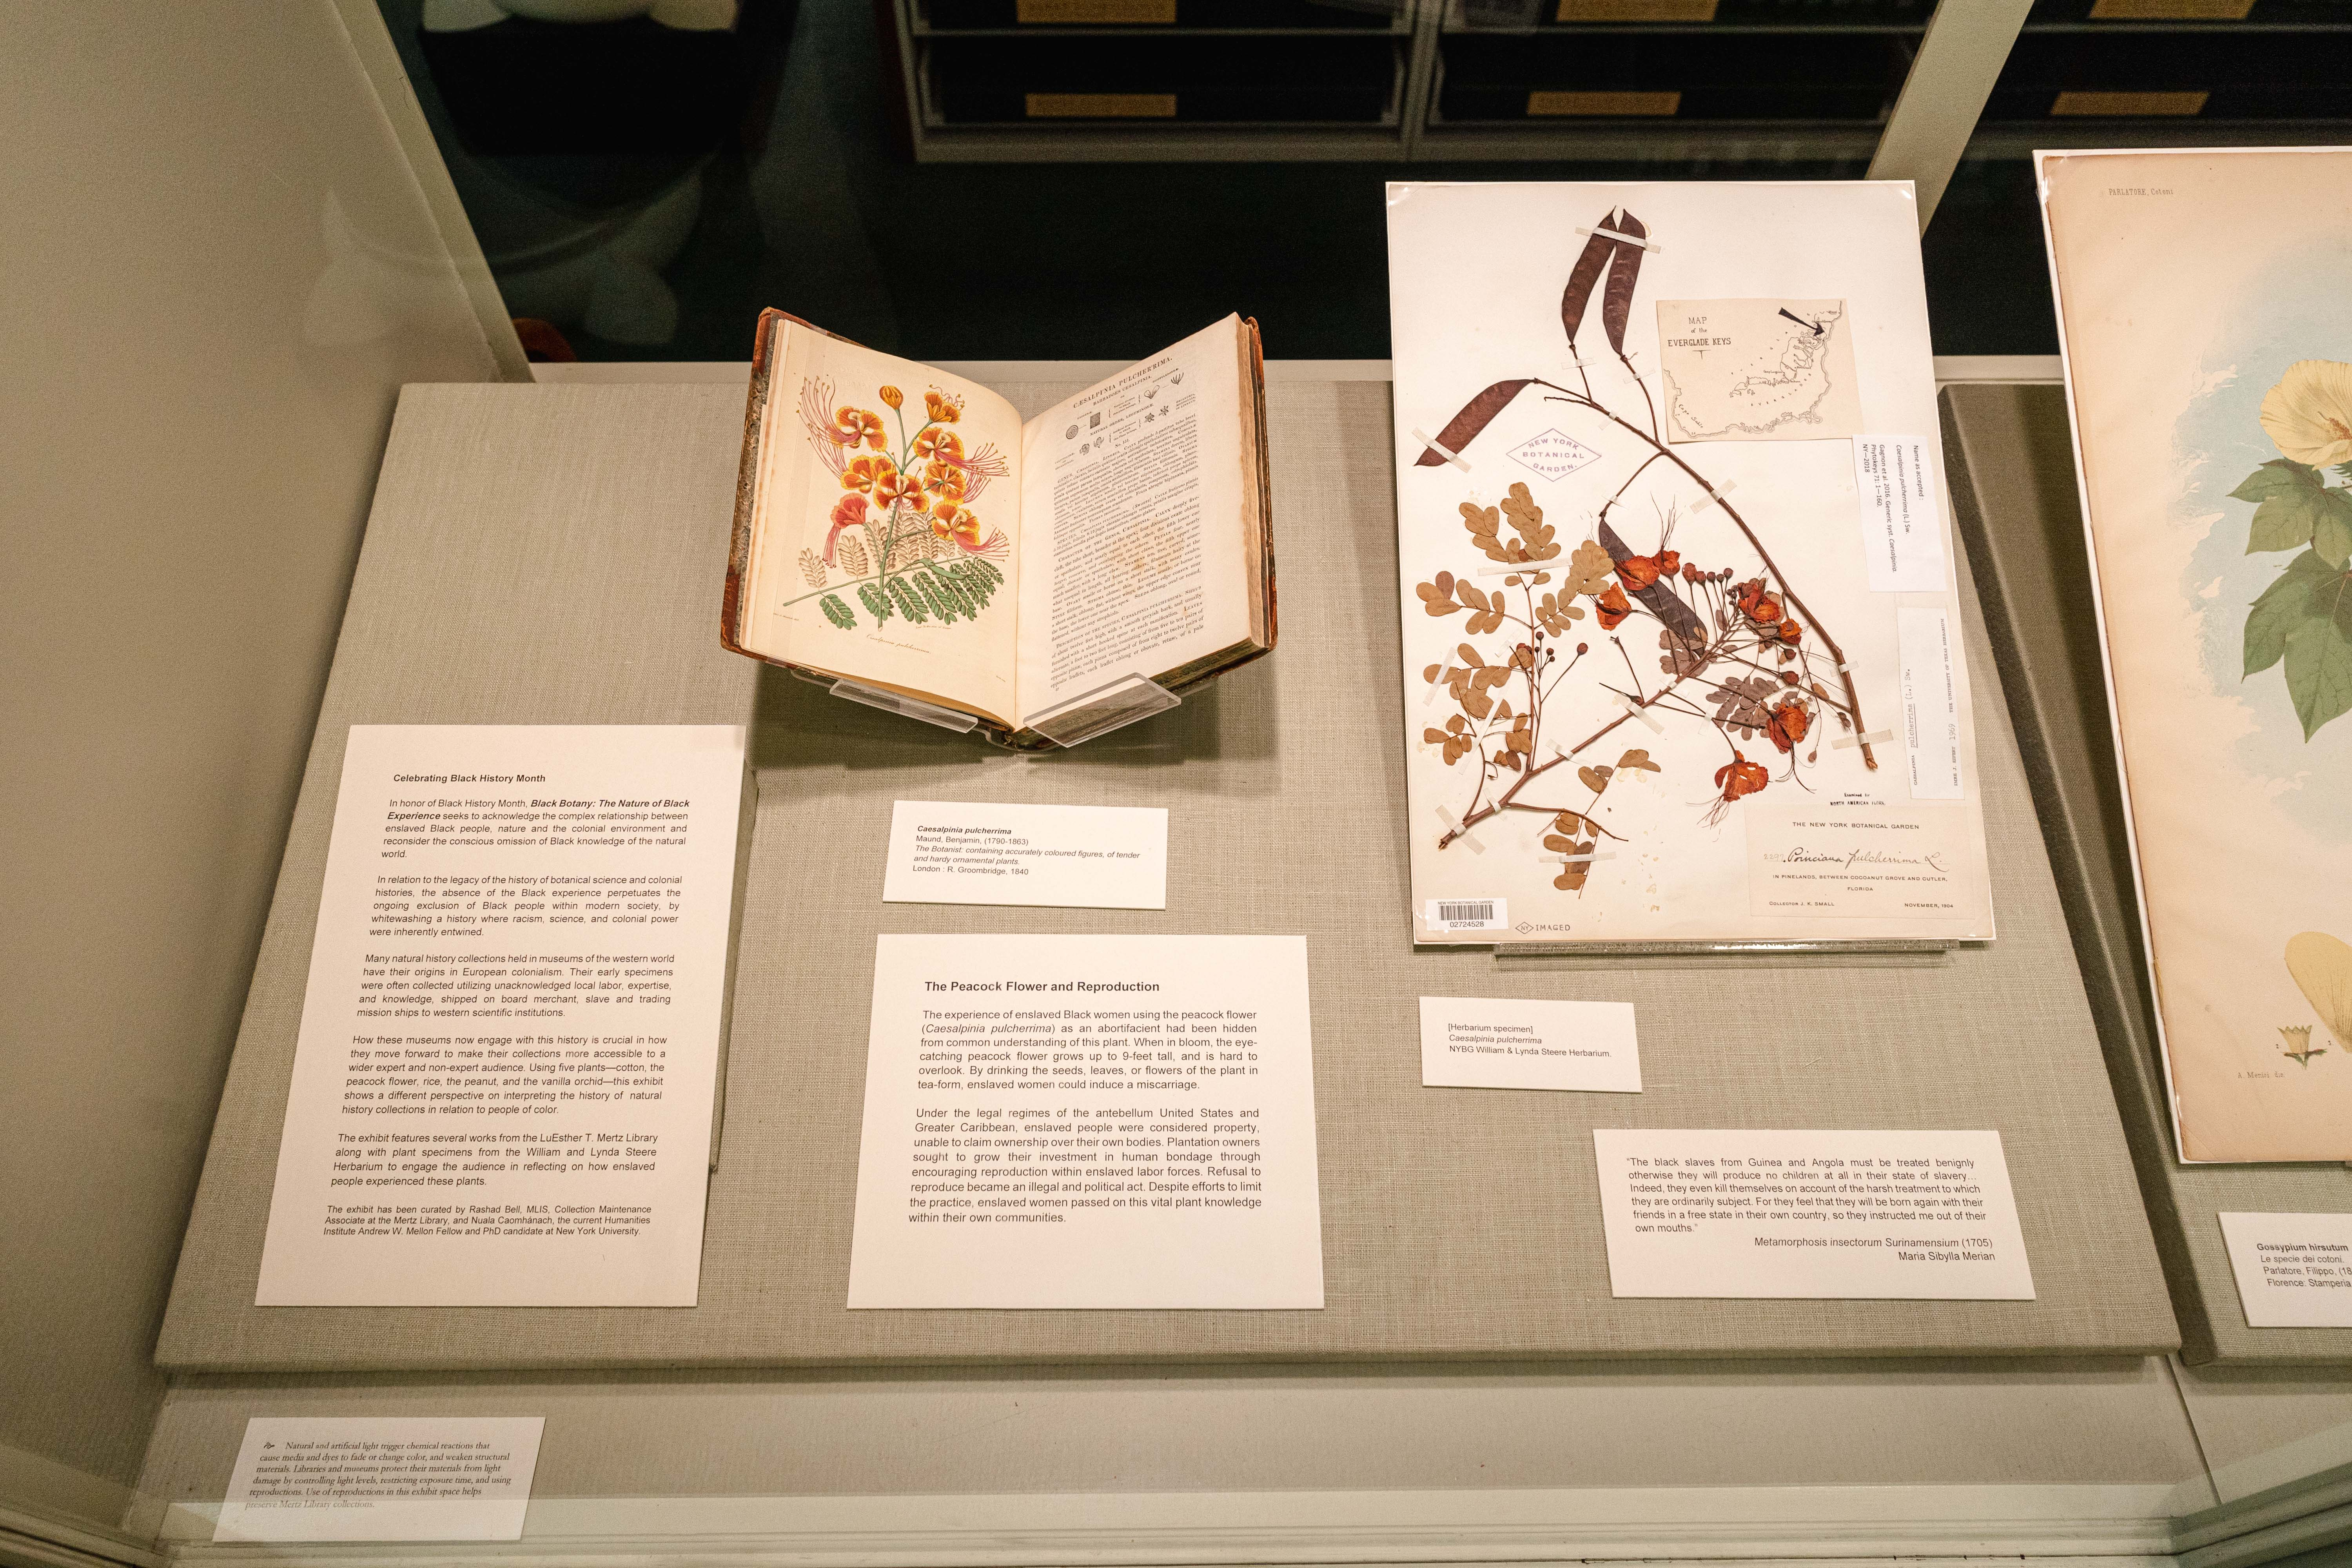 Rare Book Room: The Peacock Flower and Reproduction